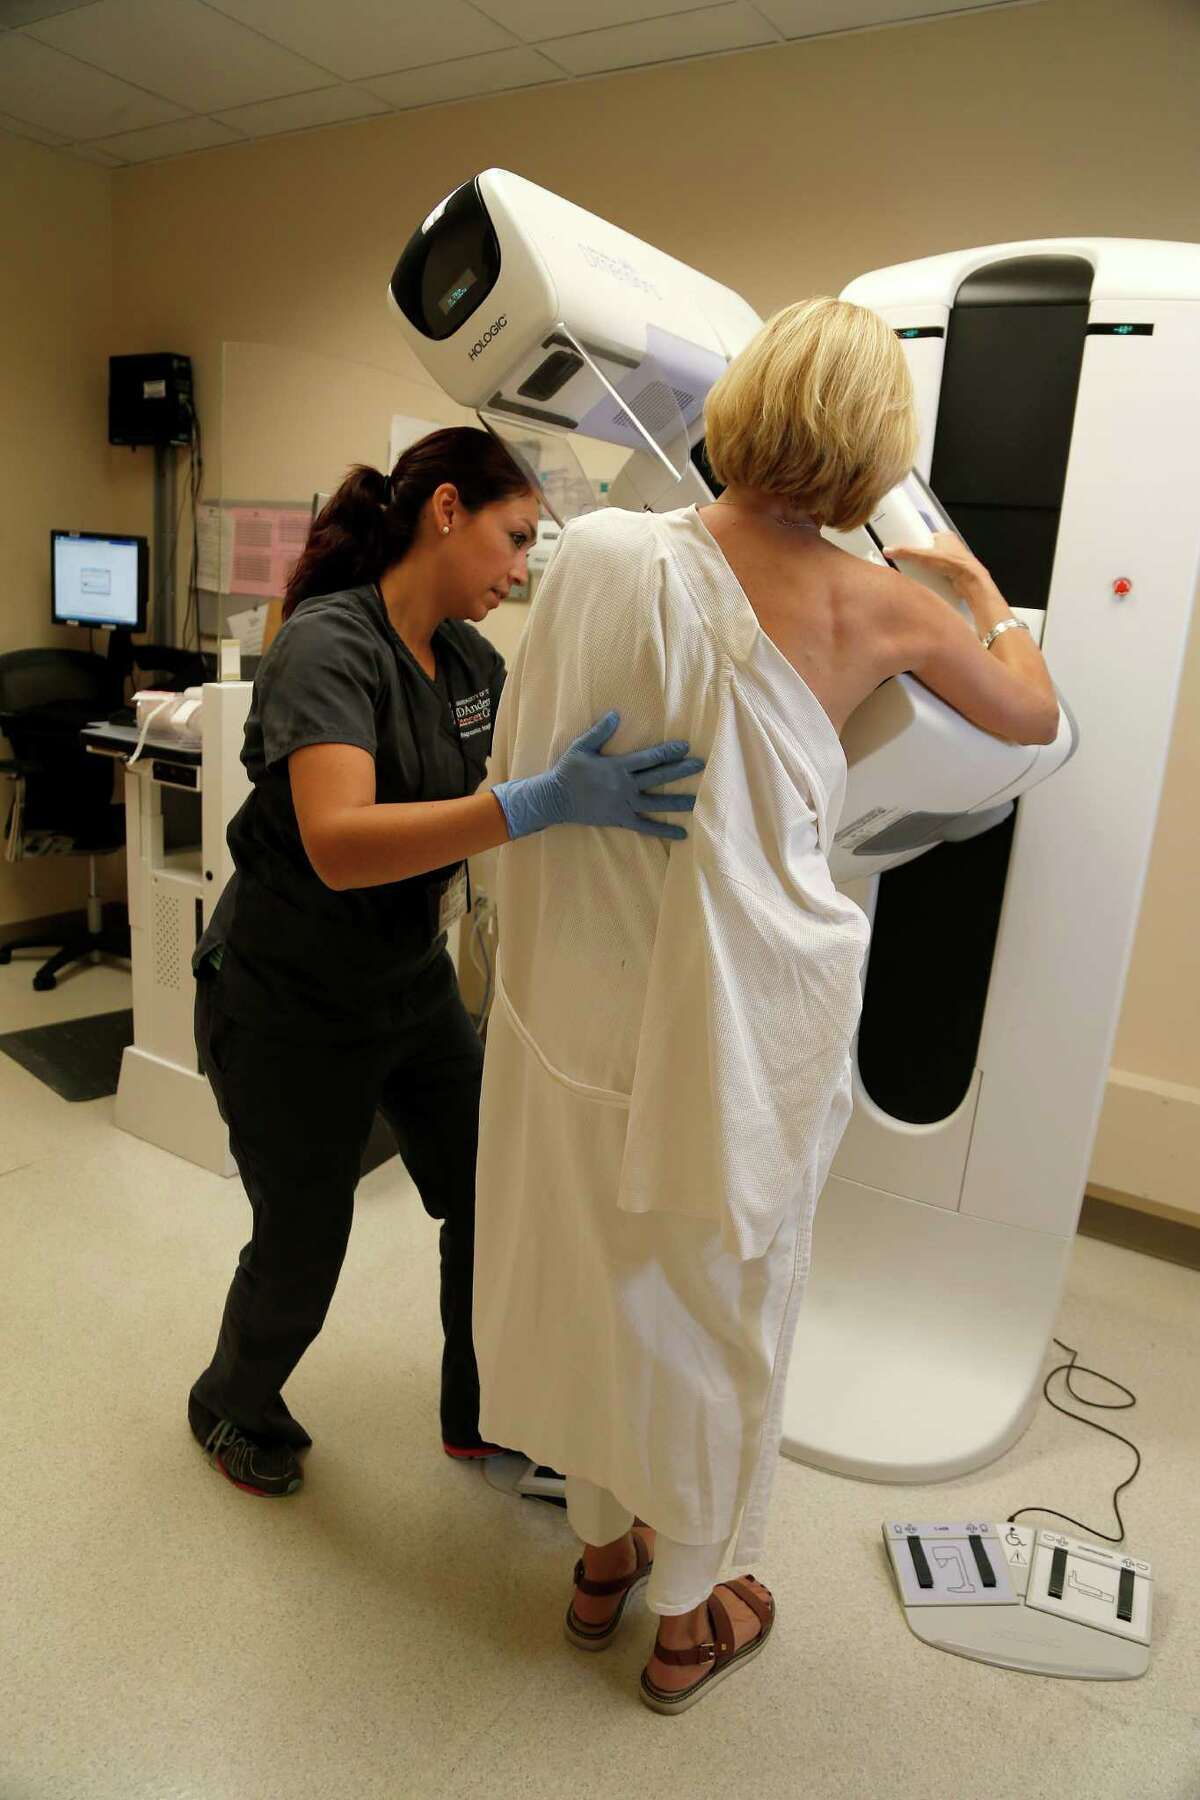 Members of the U.S. Preventive Services Task Force make recommendation determining at what age women should undergo mammograms.